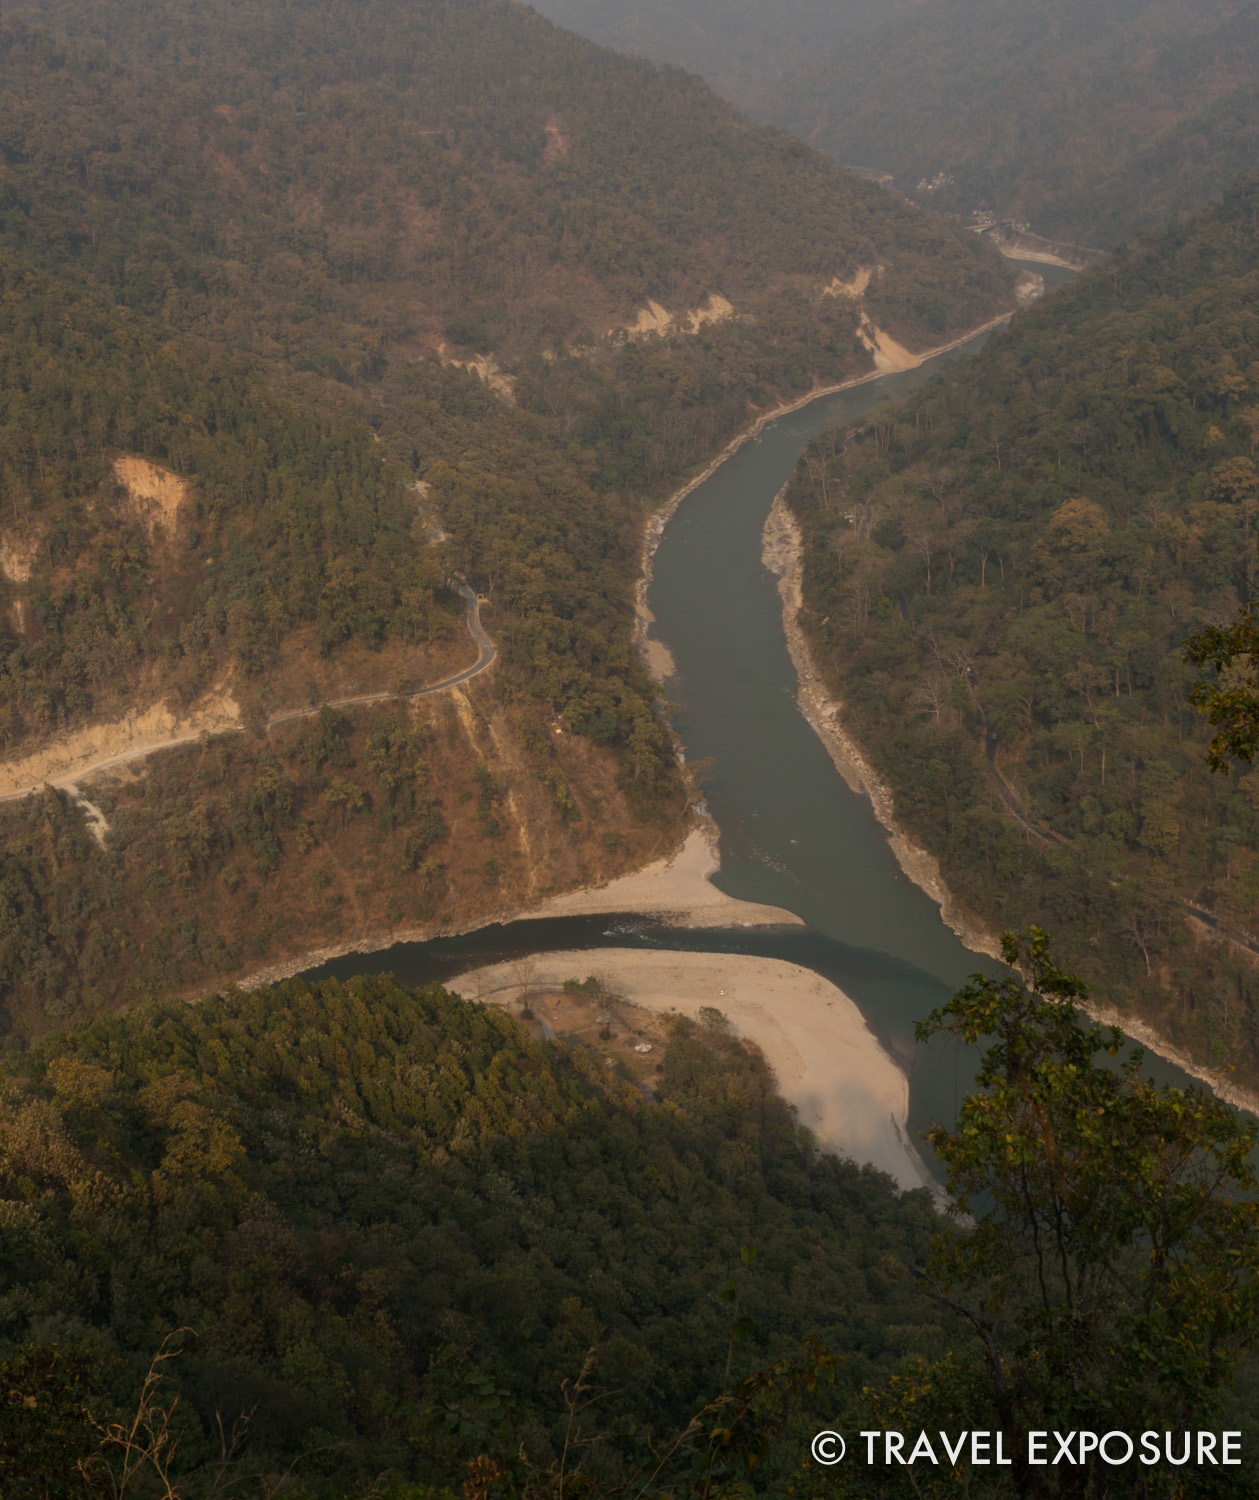 The meeting of the river Rangeet and the river Teesta on the way to Sikkim